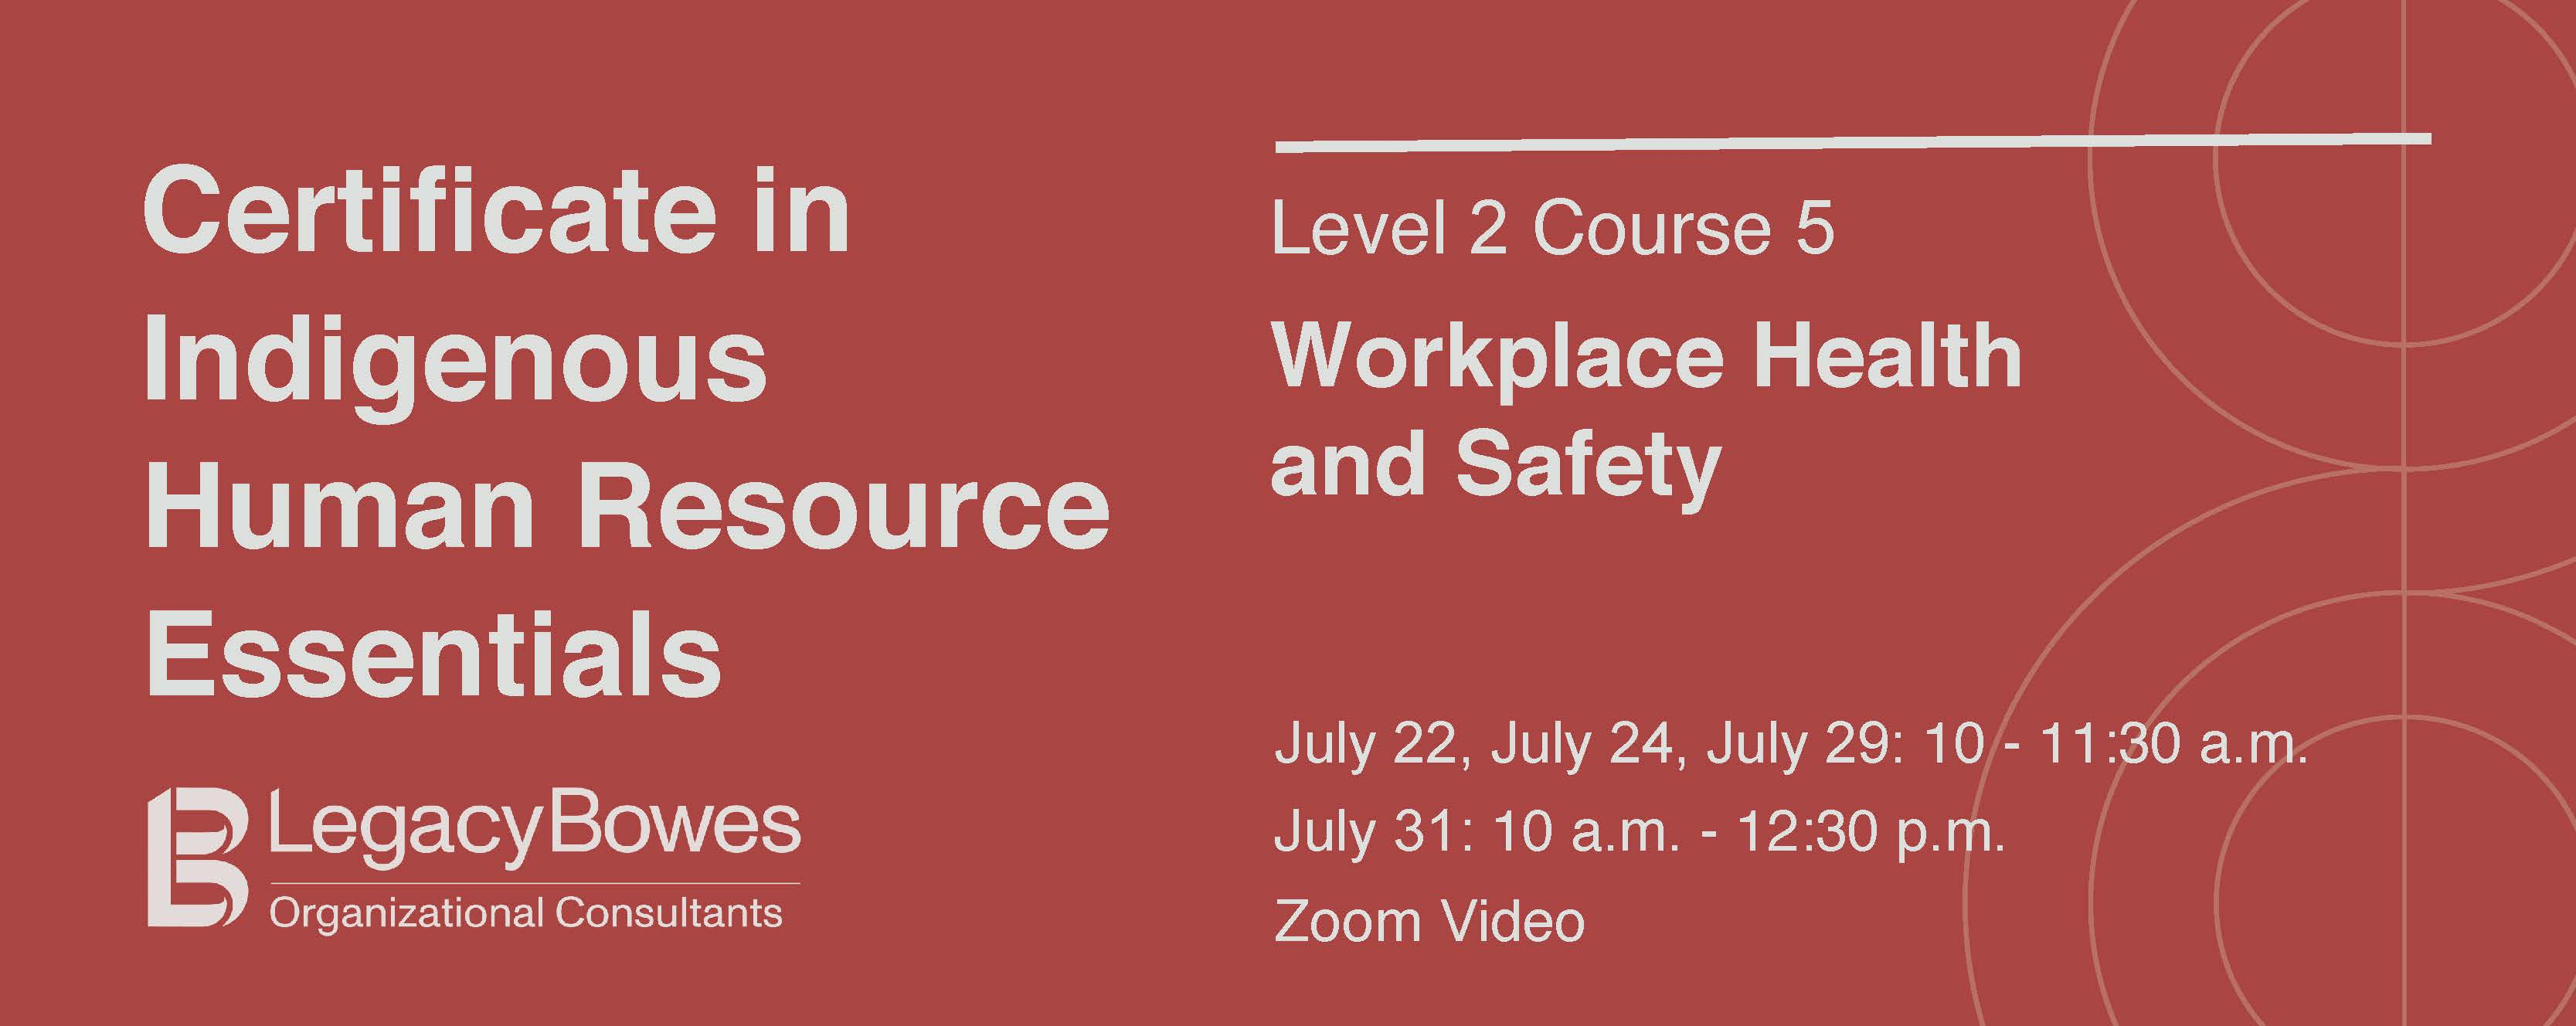 Online Course Header L2C5 July